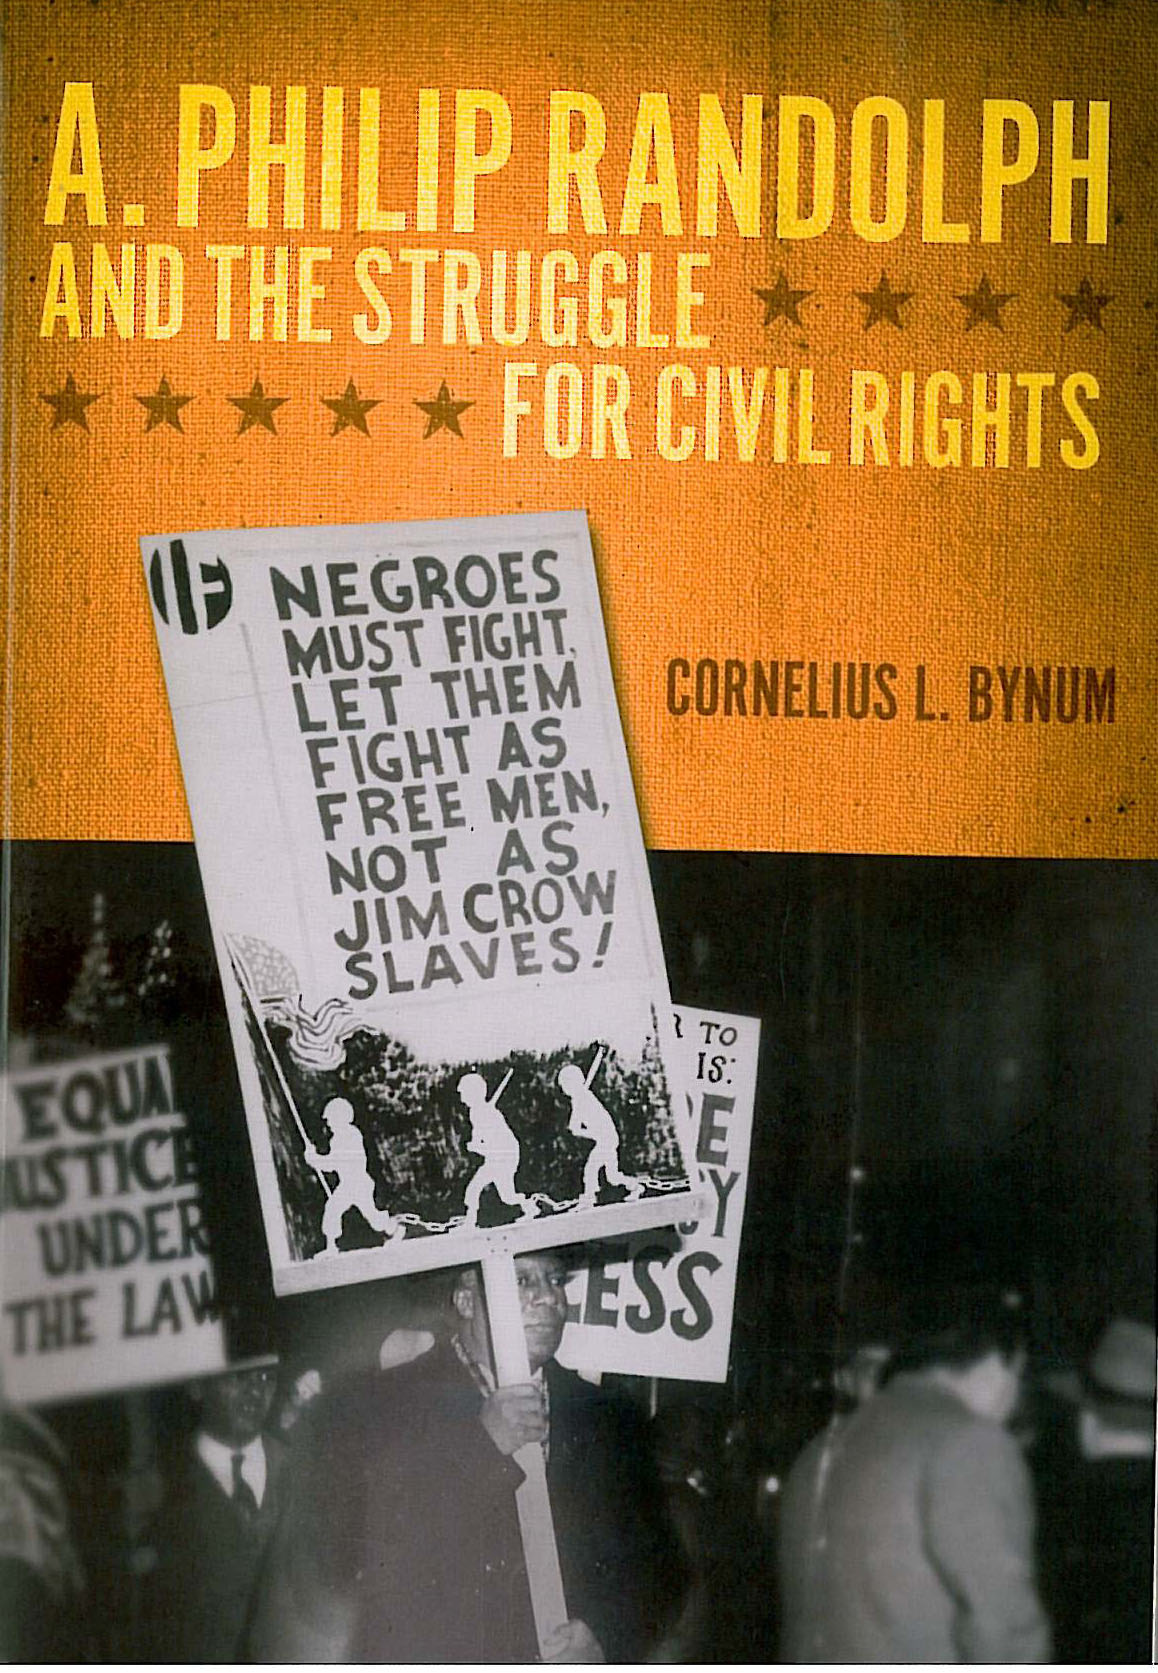 Book:  A. Phillip Randolph and the Struggle for Civil Rights